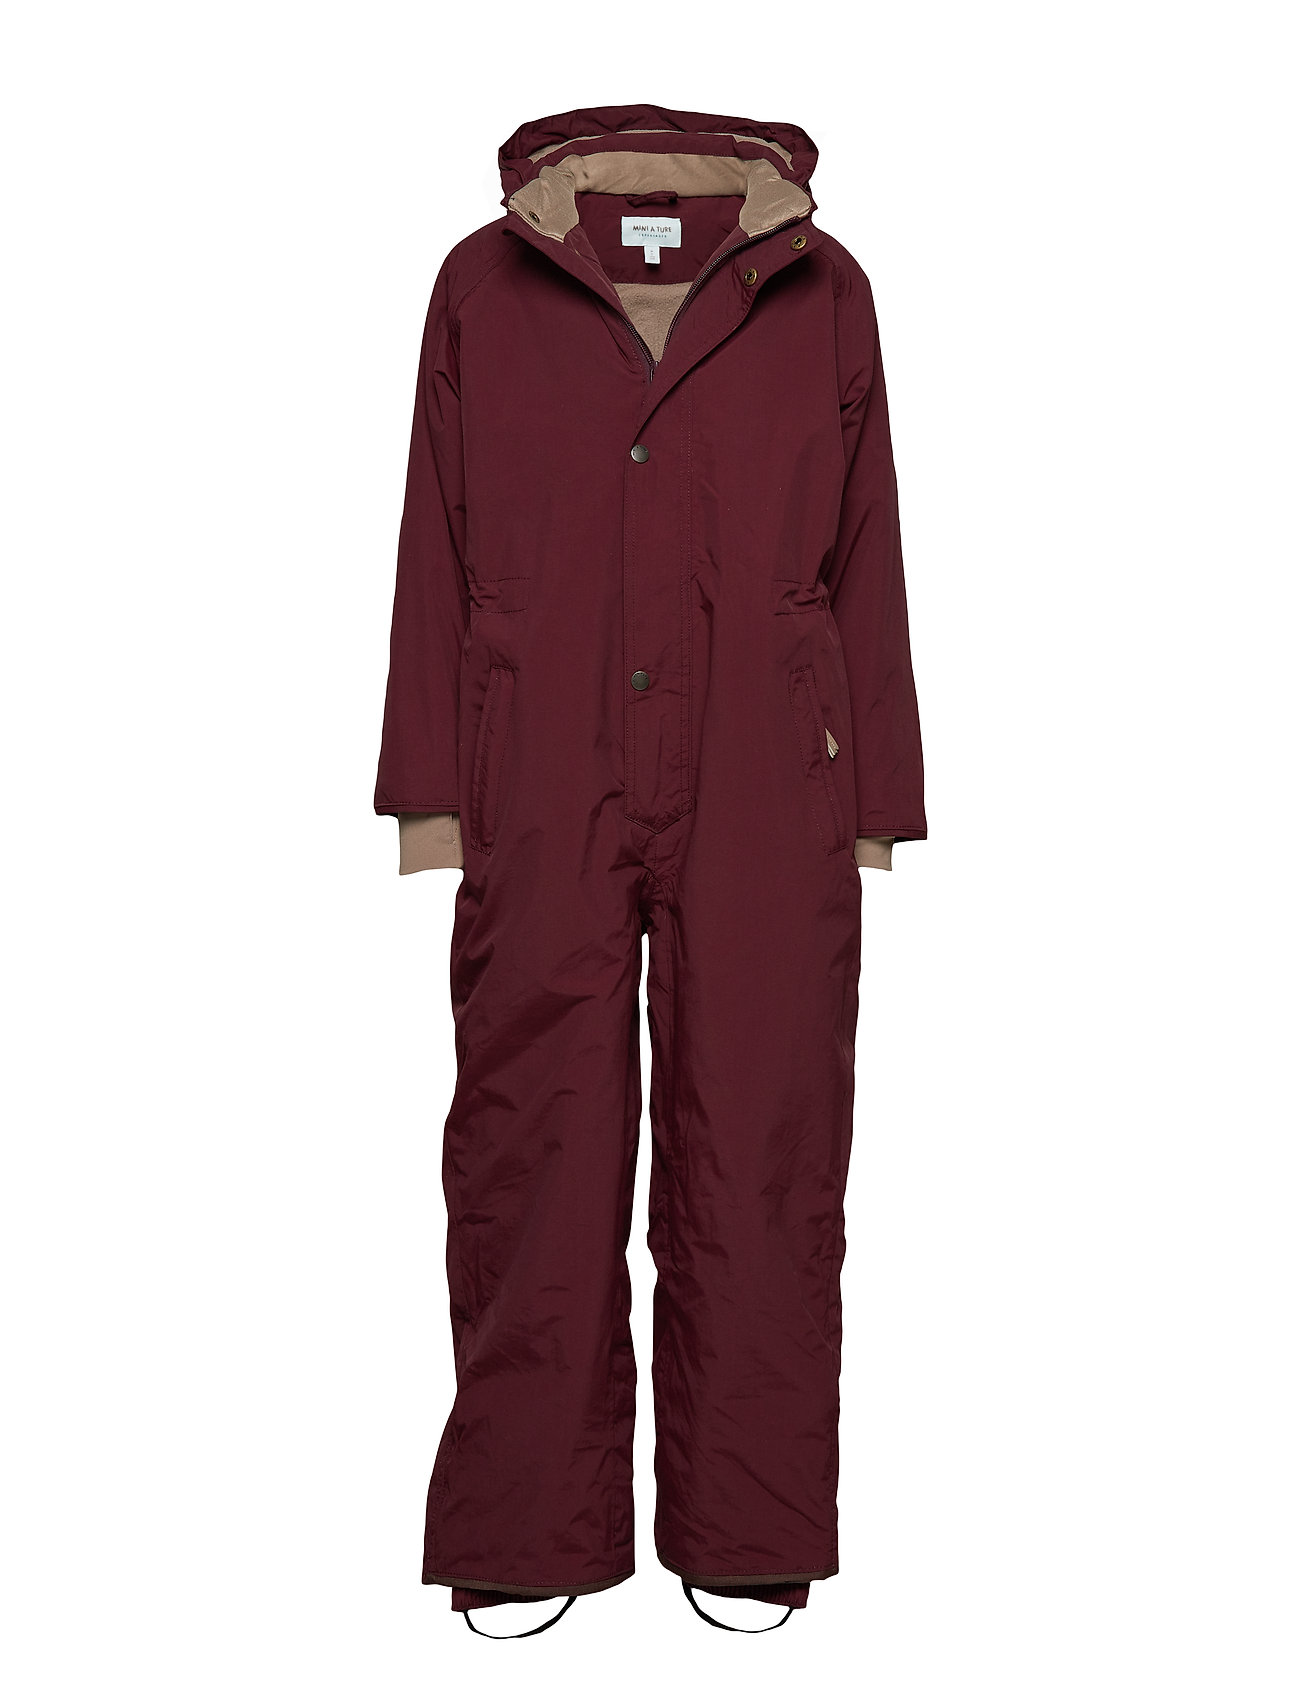 Mini A Ture Wanni Snowsuit, K - WINETASTING PLUM